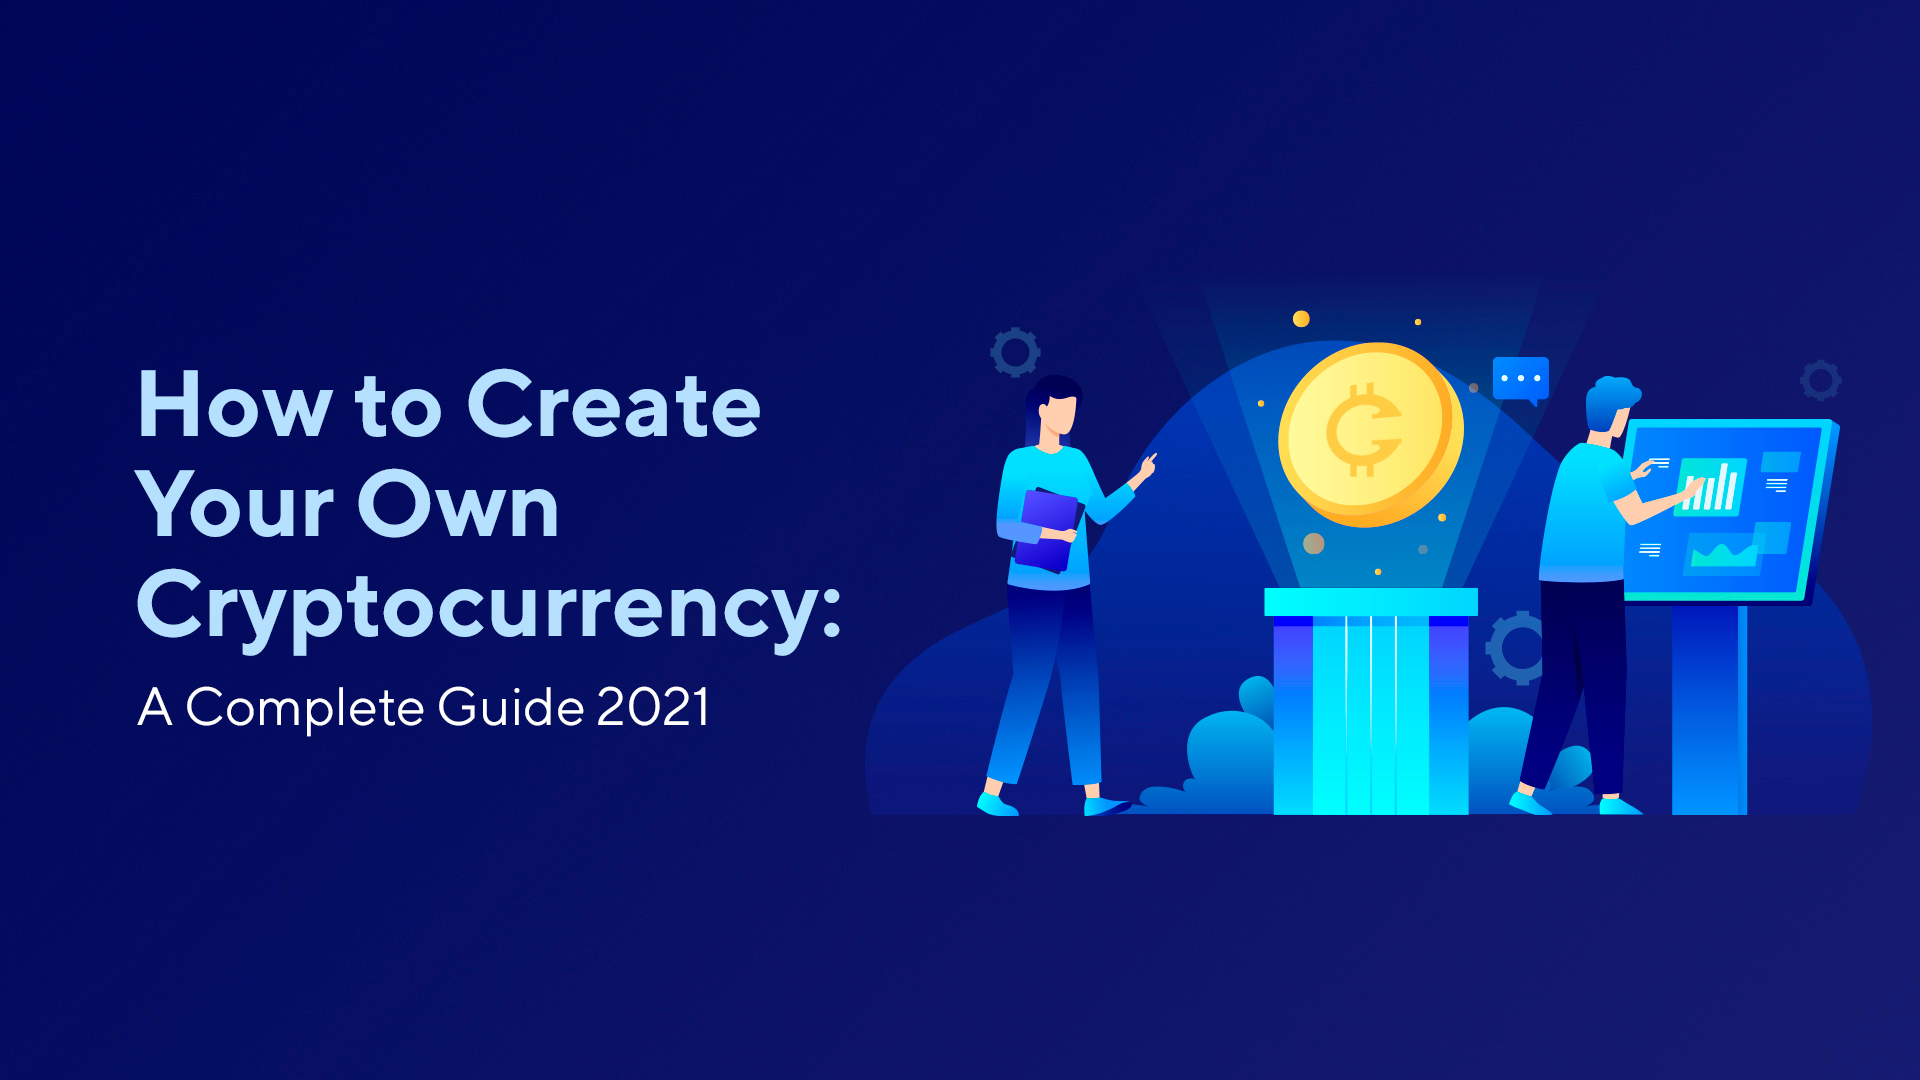 How to Create Your Own Cryptocurrency: A Complete Guide 2021